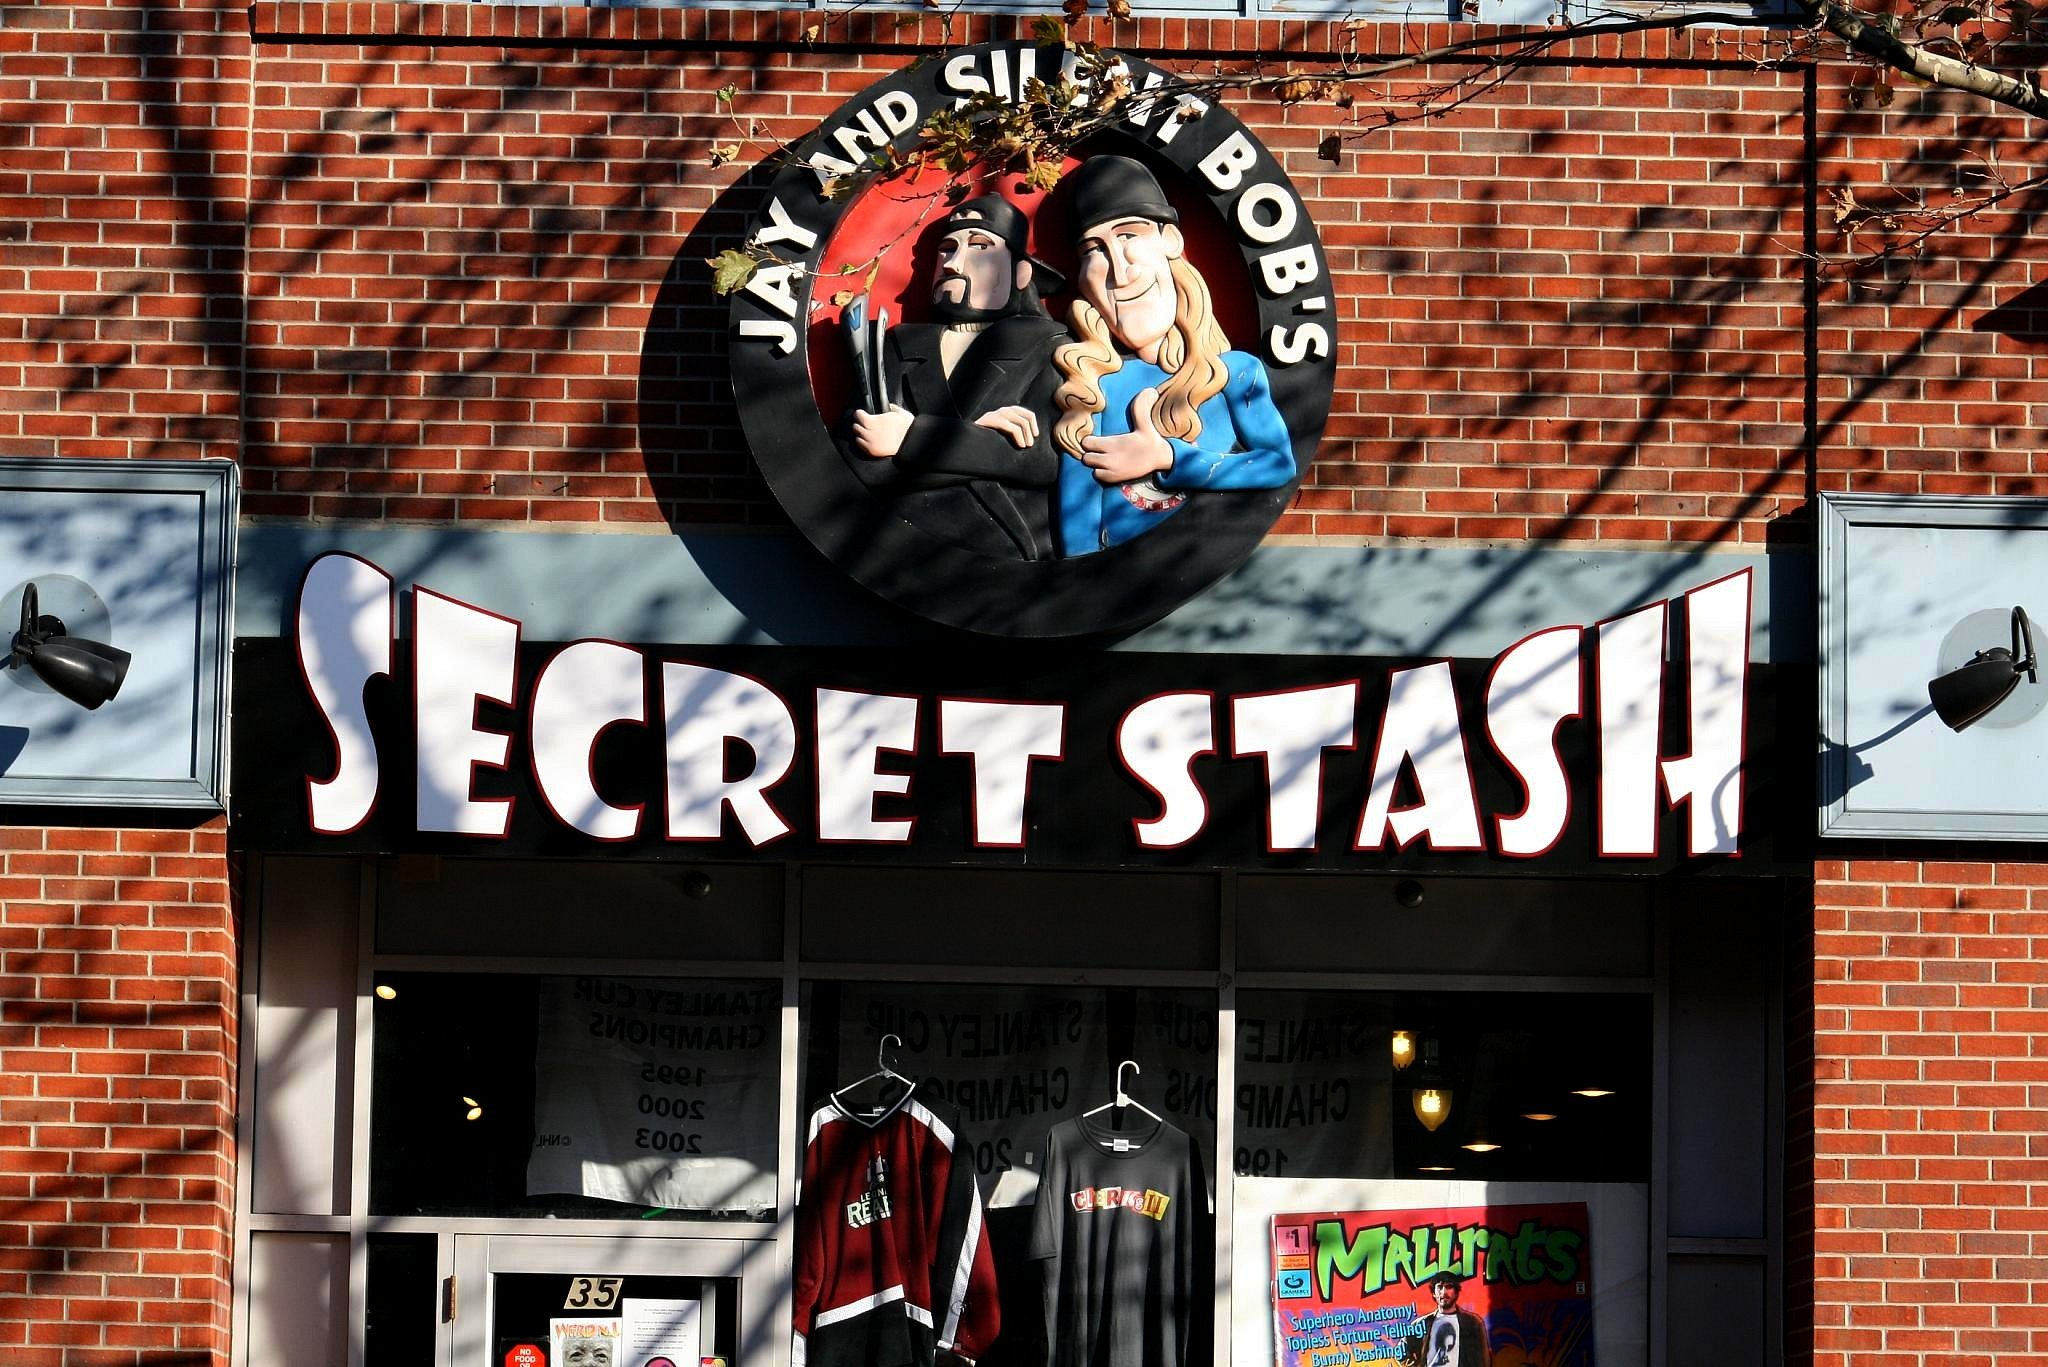 Jay and Silent Bobs Secret Stash . Red Bank . New Jersey Celebrities With Surprising Side-Hustles